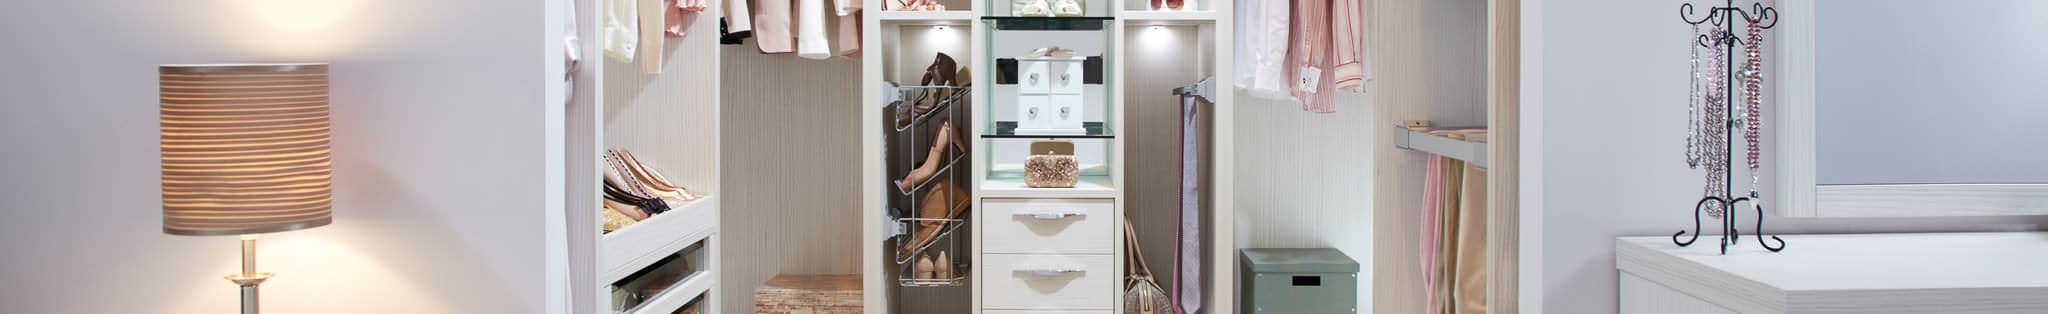 Walk in wardrobes and dressing rooms: What's the difference?